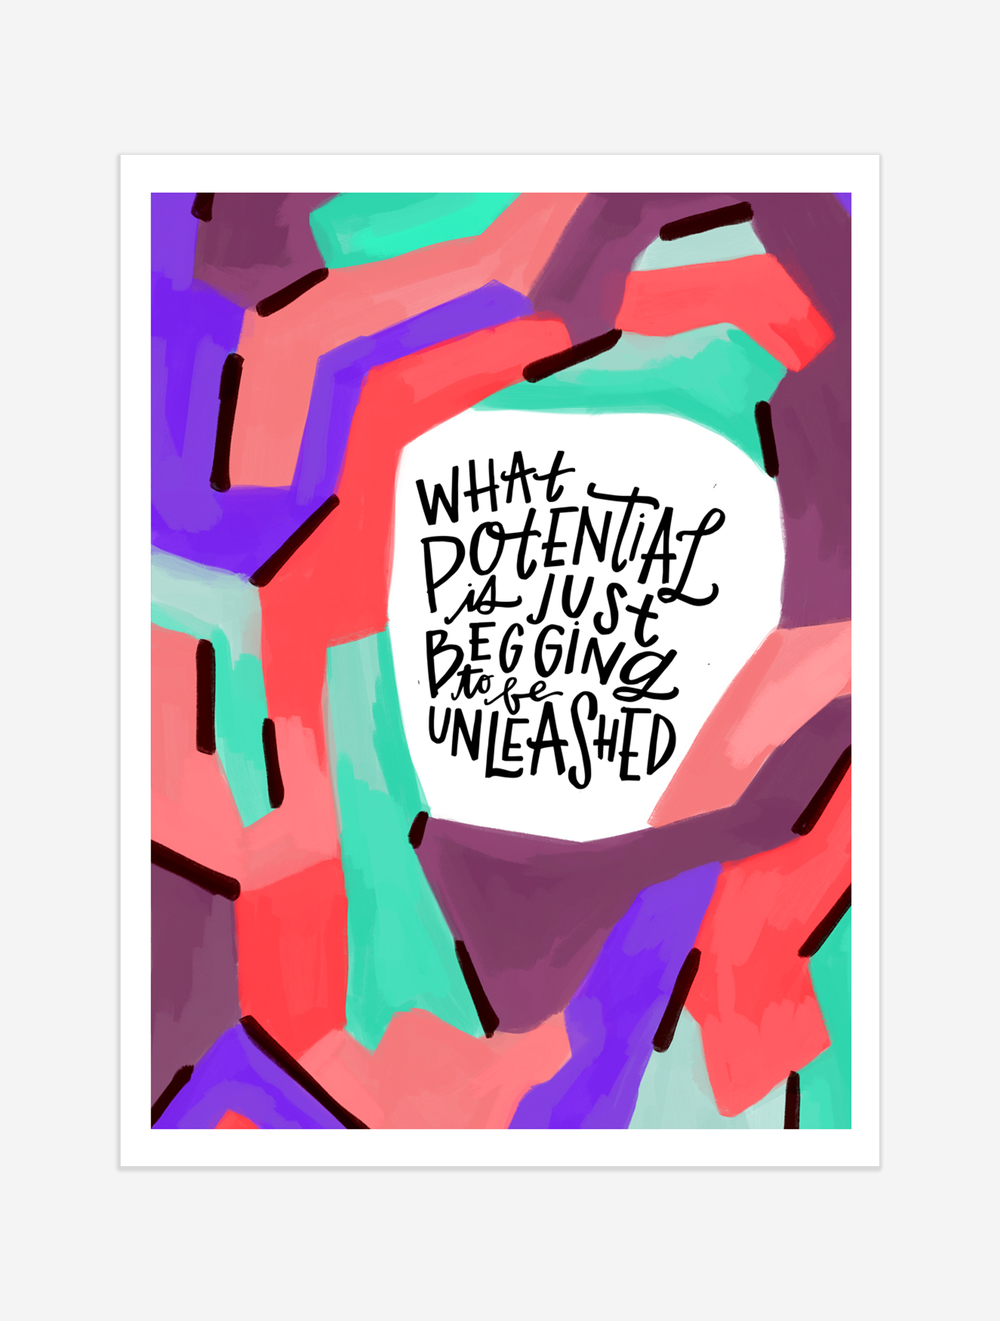 A friendly reminder to let out whatever talents and desires are just begging to be unleashed inside you! $25 giclee print available at the Made Vibrant Art Shop.